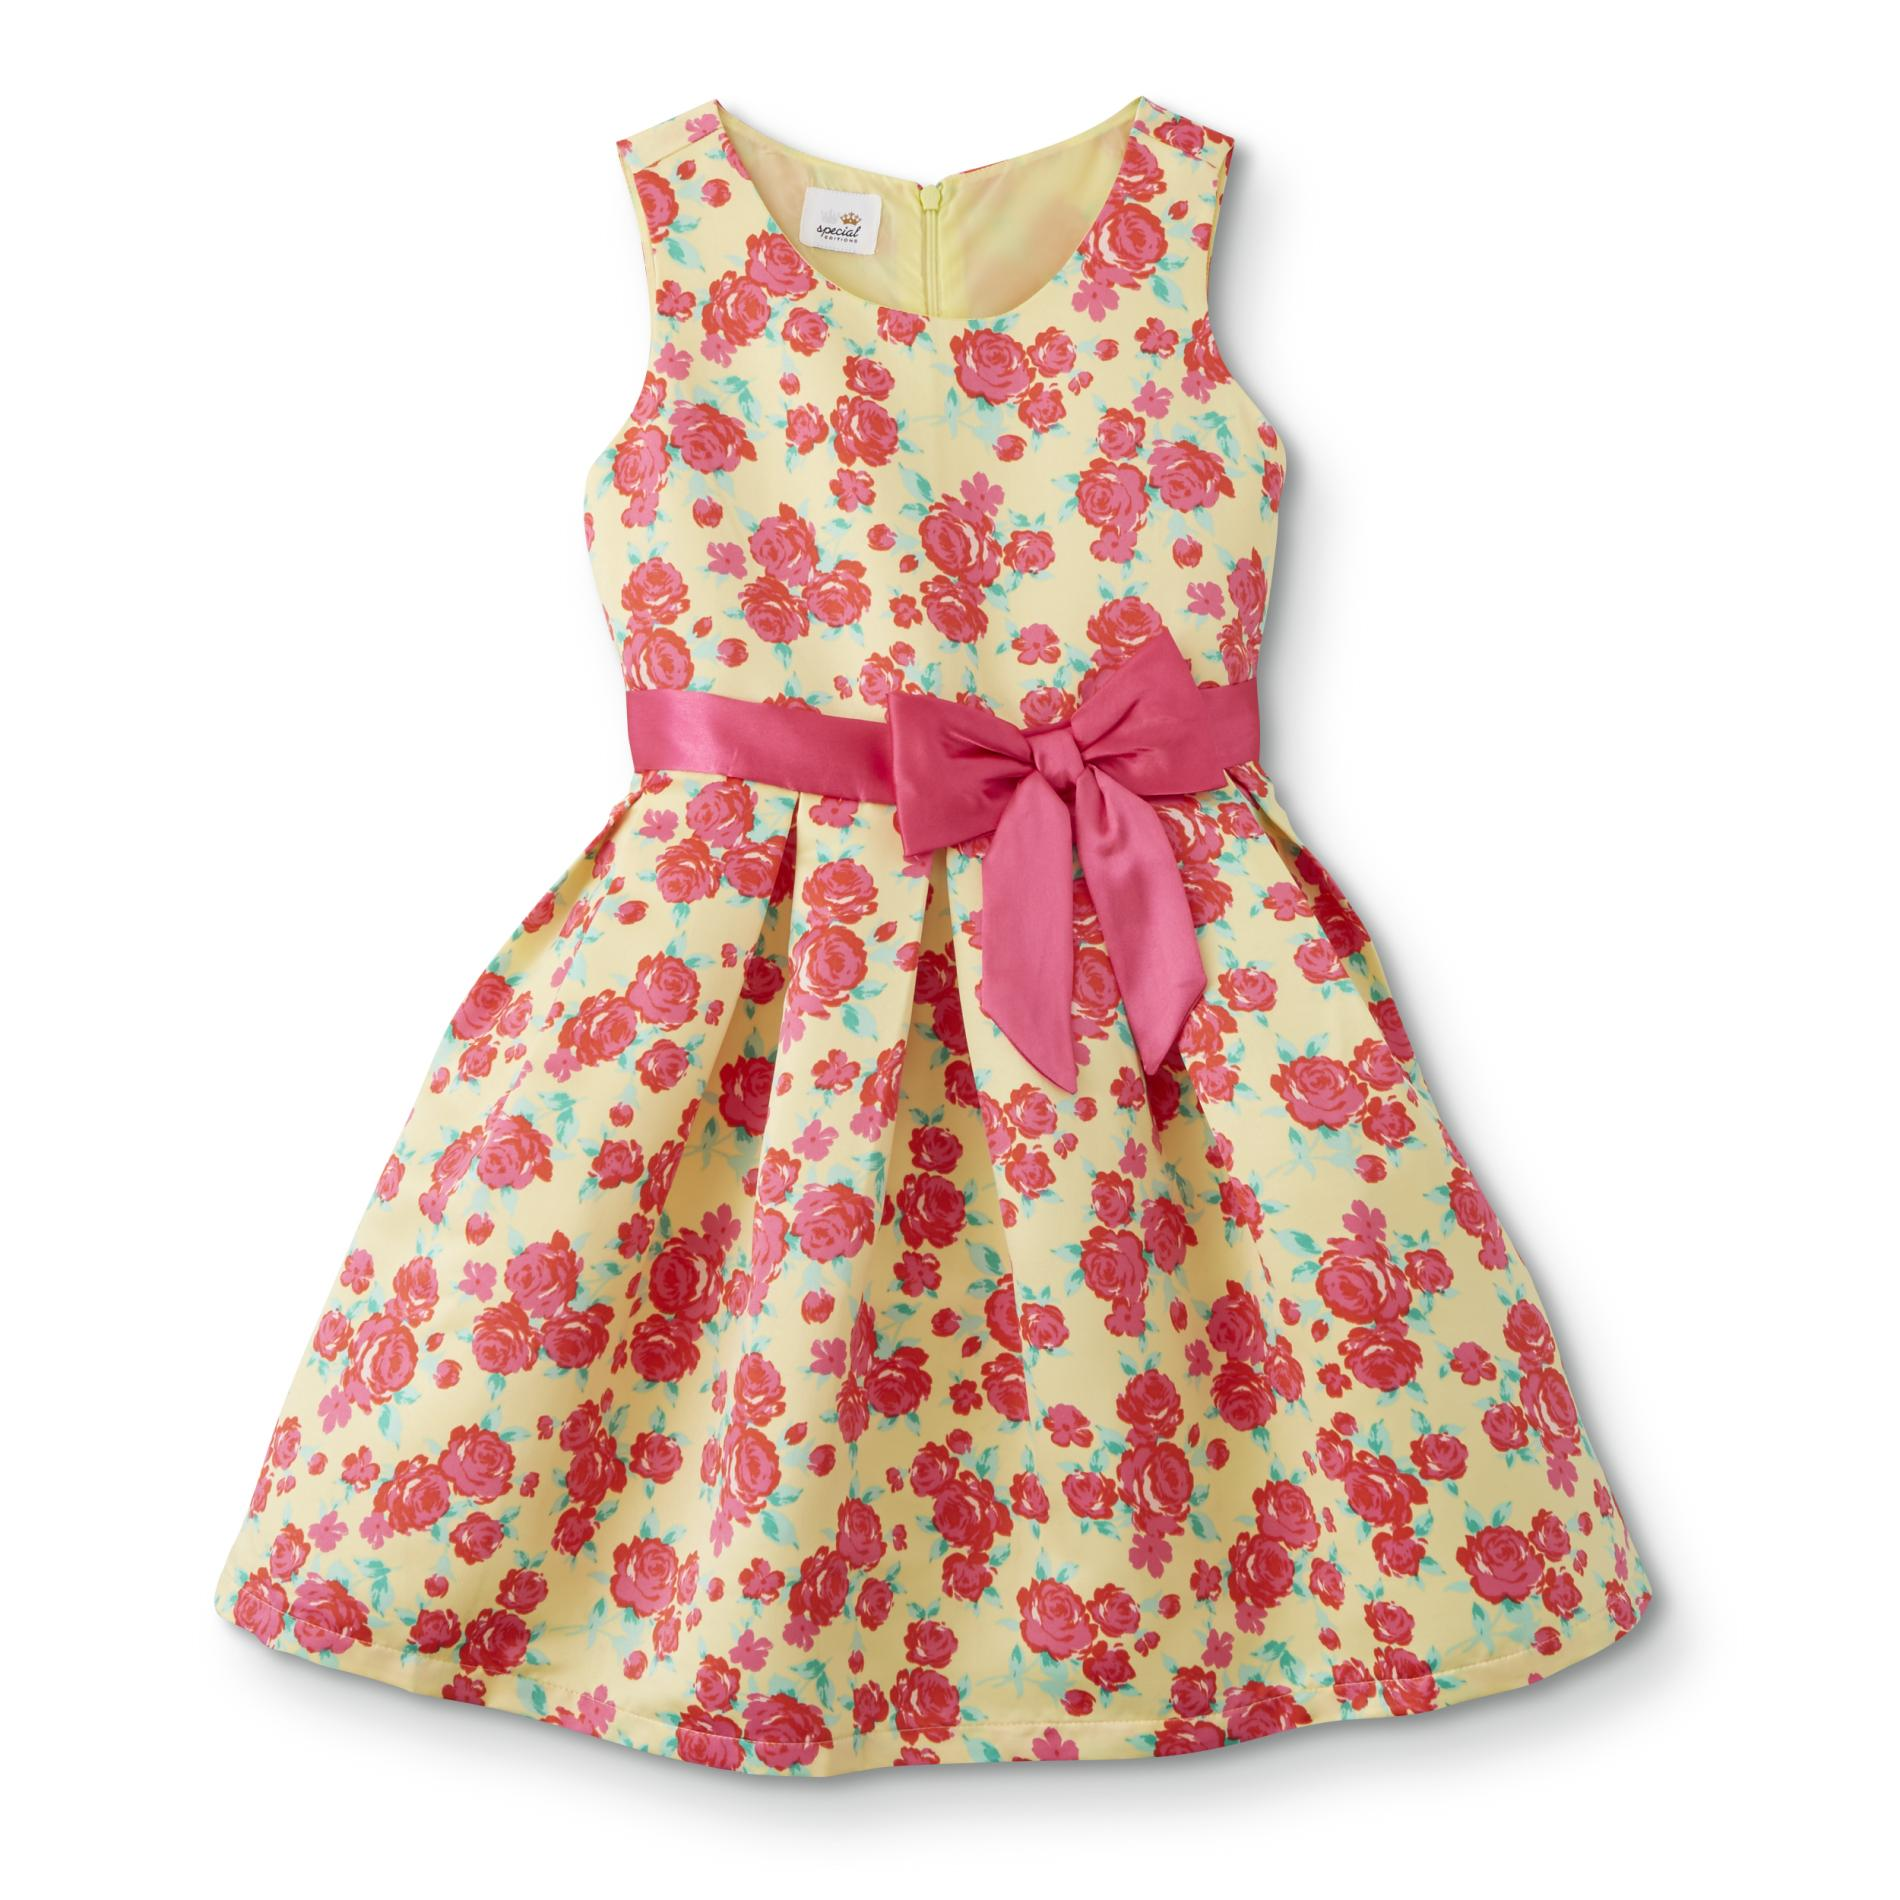 Special Editions Girls' Fit & Flare Party Dress - Floral, Size: XXL, Yellow im test